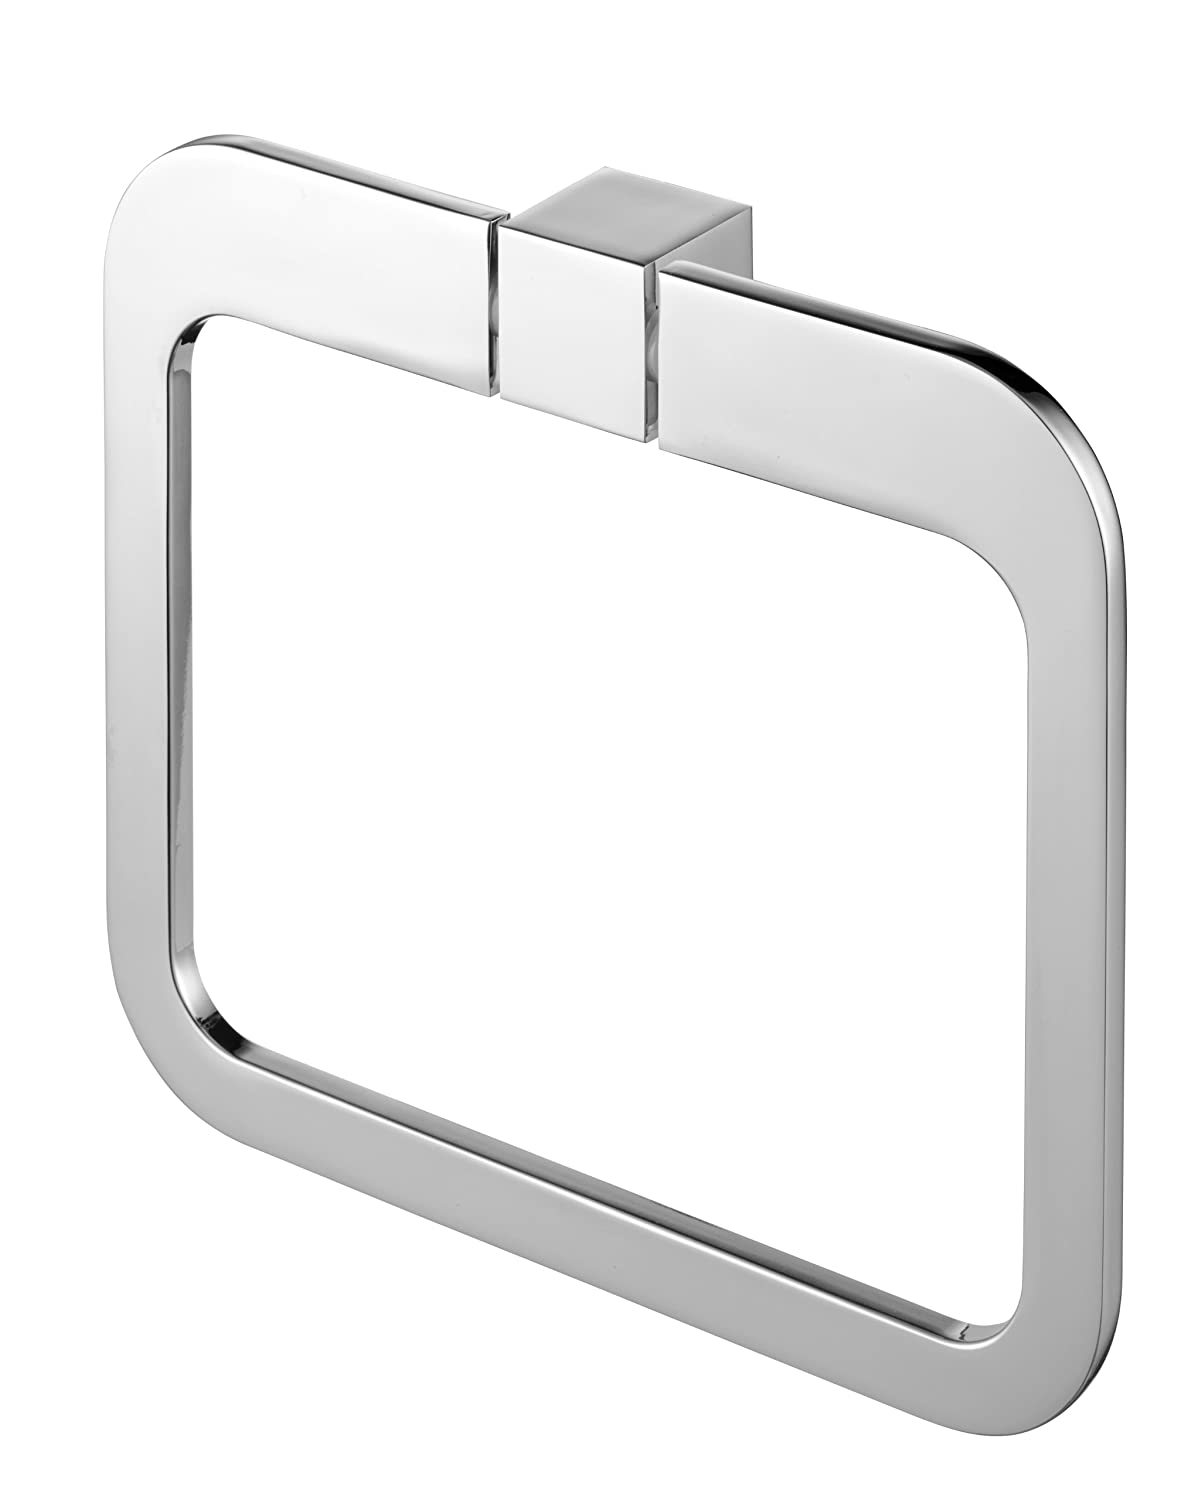 Bisk 02996 Futura Finished Towel Ring, 20 x 3 17.5 cm, Silver 2996_chrom